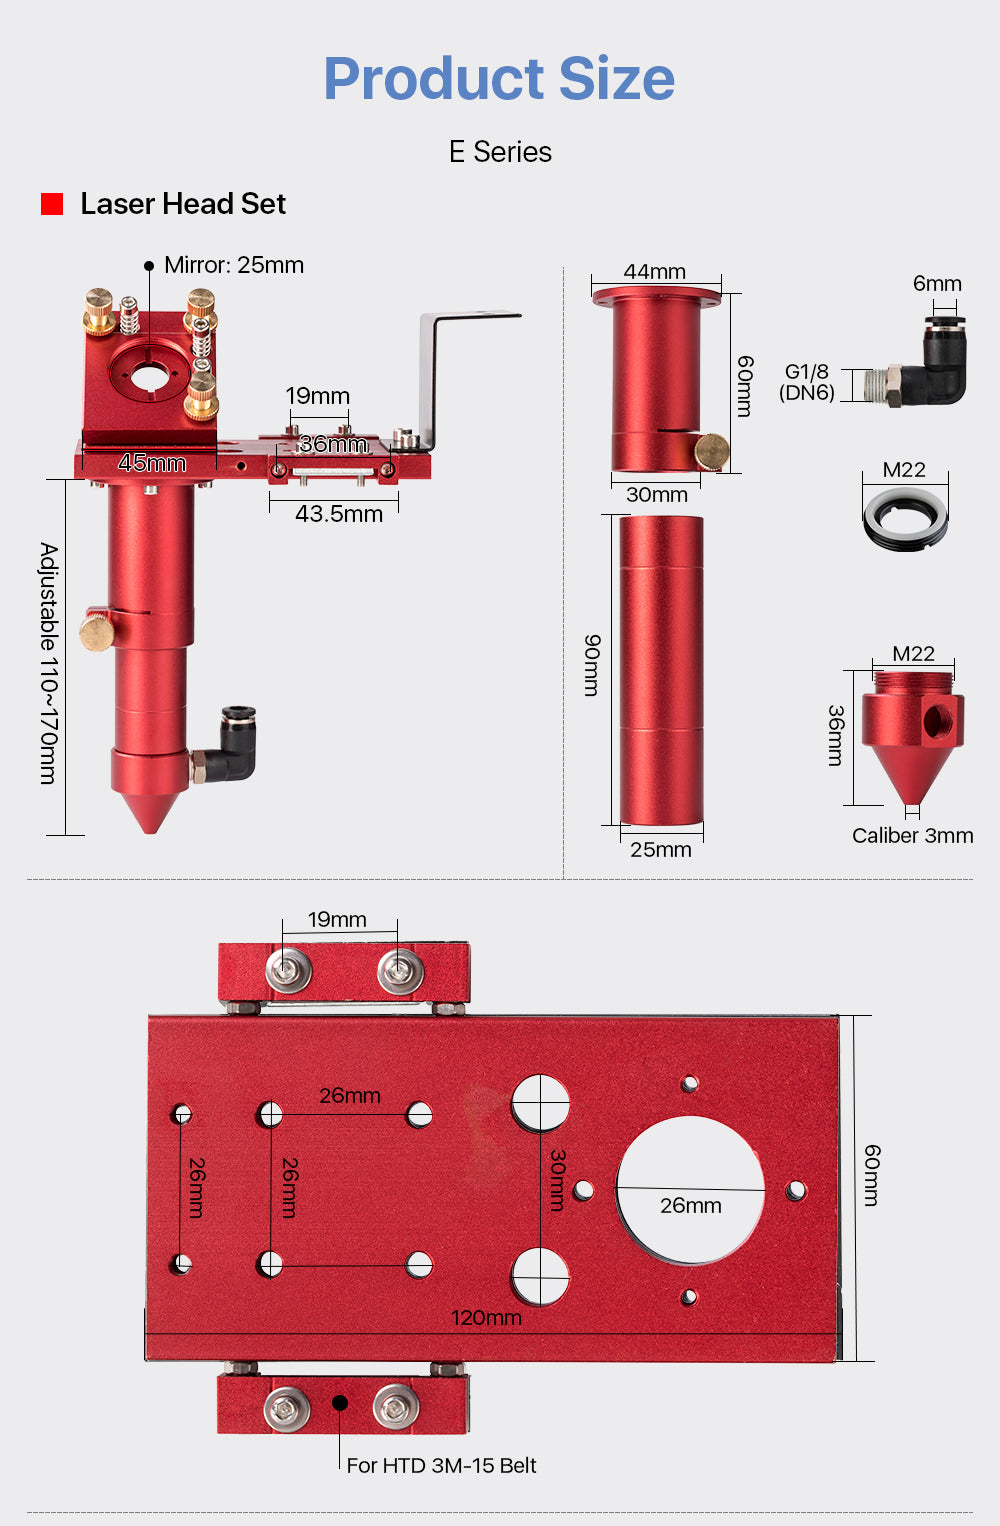 E Series CO2 Laser Head Set + 1 Pcs Focus Lens 20mm + 3 Pcs Reflective Mirror 25mm Red for CO2 Laser Engraving Cutting Machine